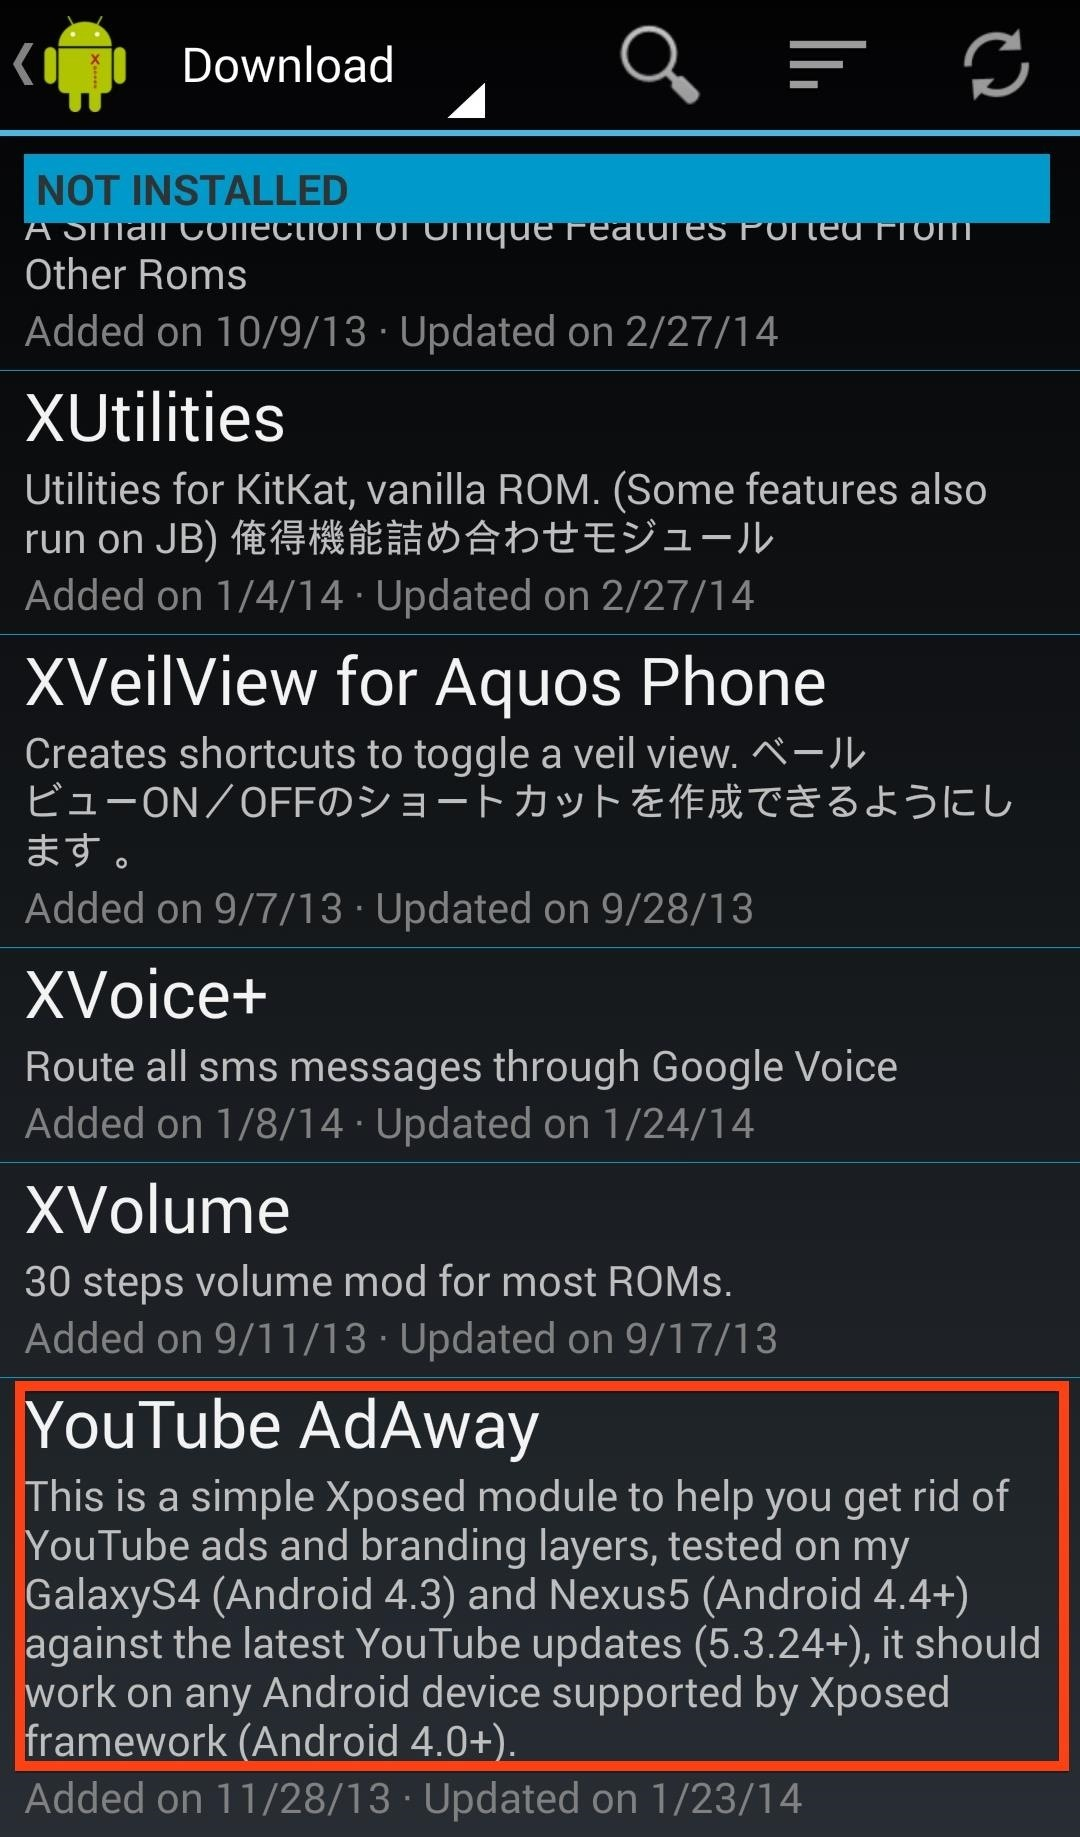 How to Get Rid of Annoying YouTube Ads on Your HTC One